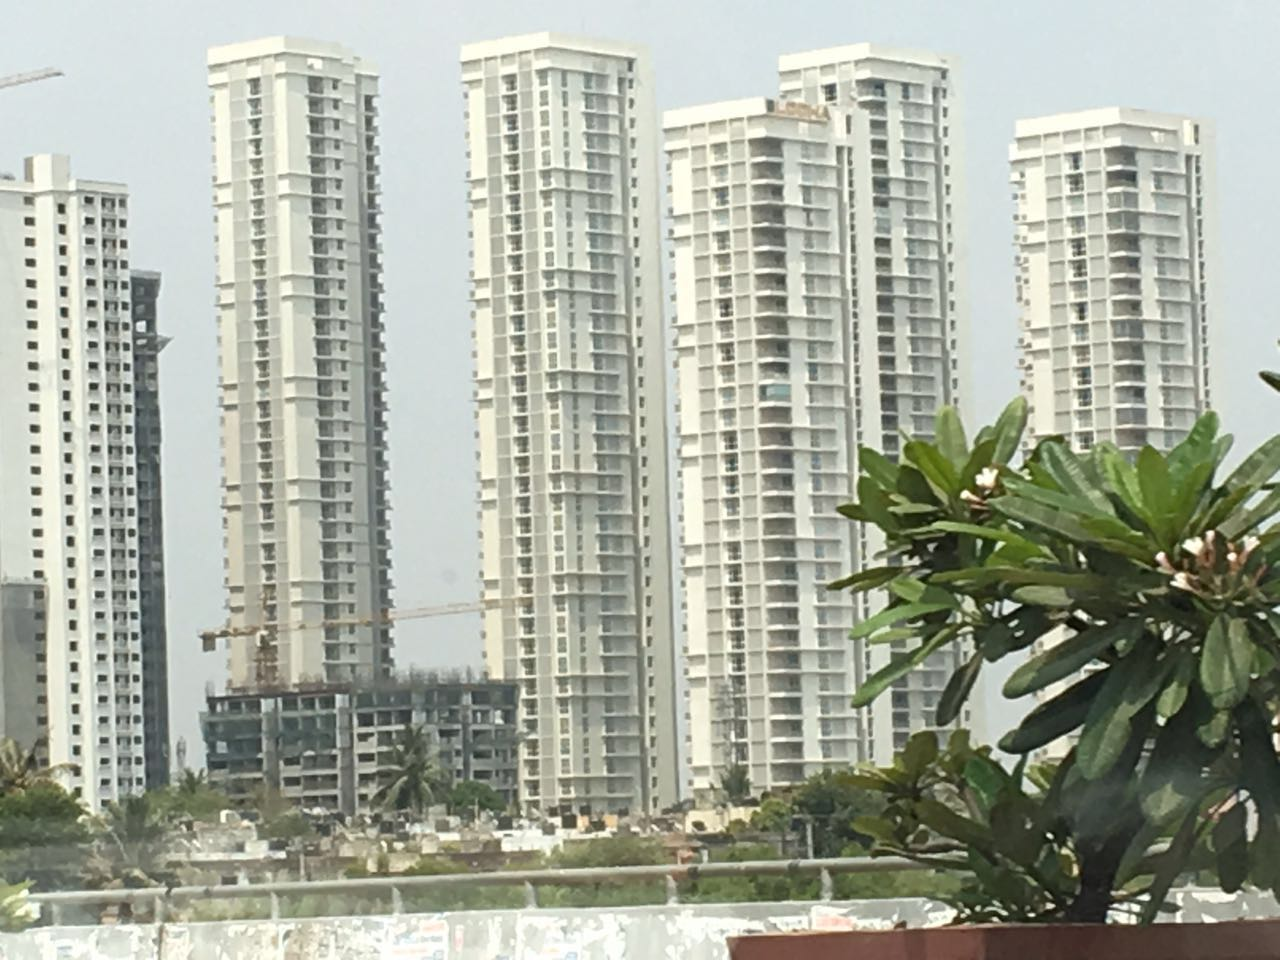 Site photograph of Lodha Bellezza project in Kukatpally, Hyderabad